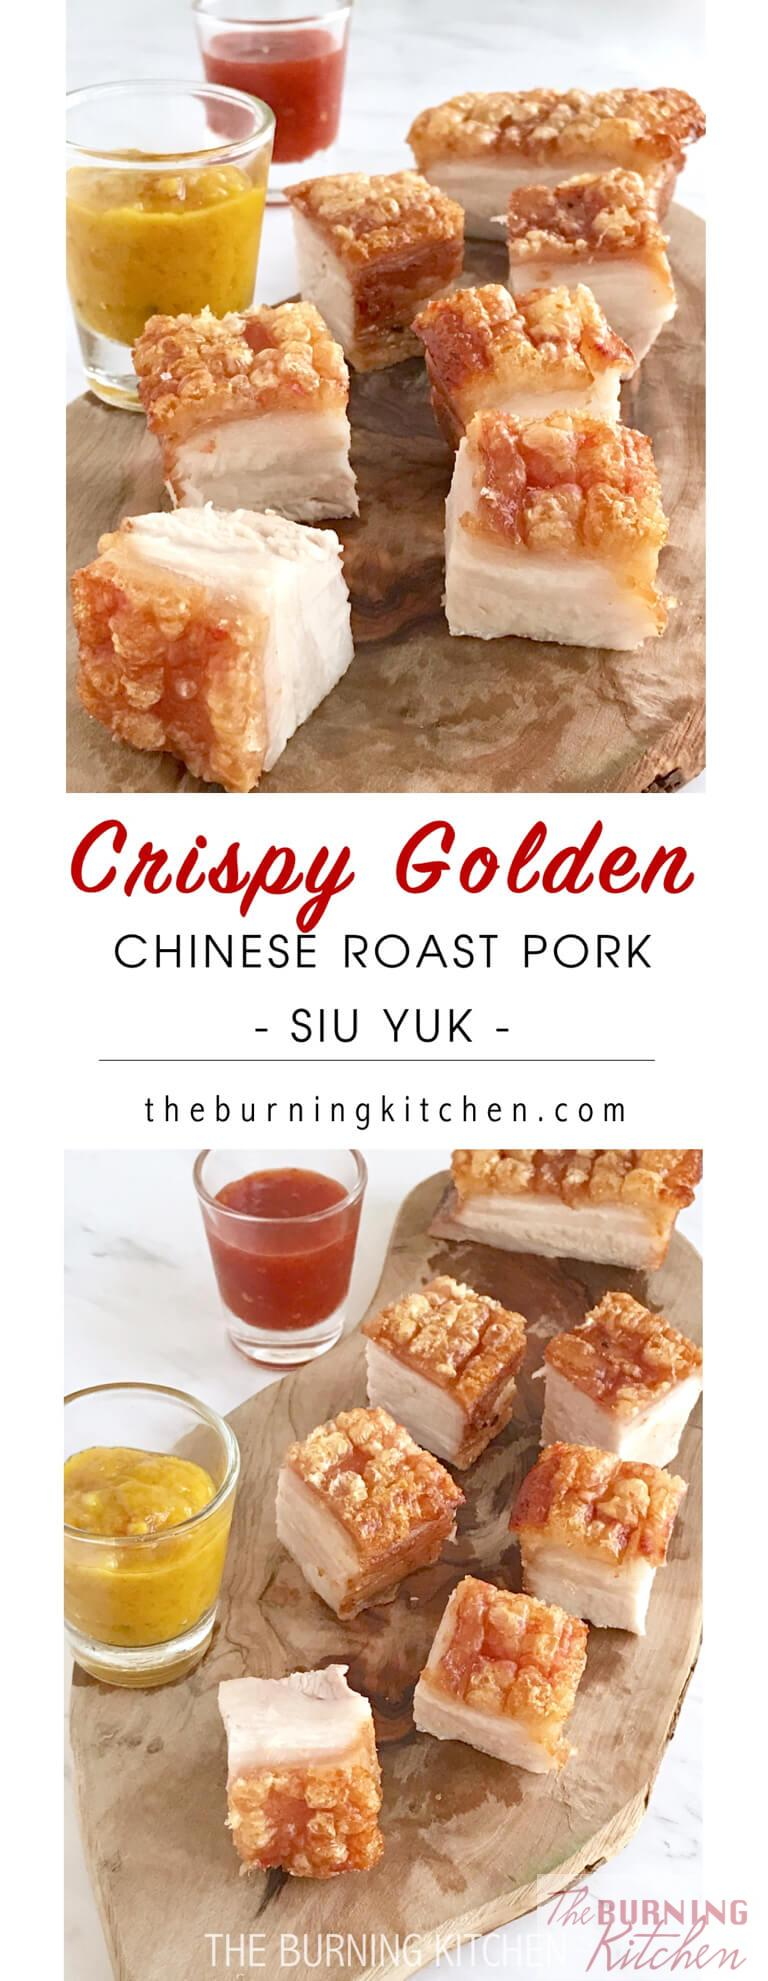 Crispy Pork Belly is probably everyone'sfavourite Cantonese roast meat! With skin so crispy you can hear the crunch asyou bite it, and meat so moist and succulent, I guarantee you won't be stopping at just one piece! #siobak #roastpork #siuyuk